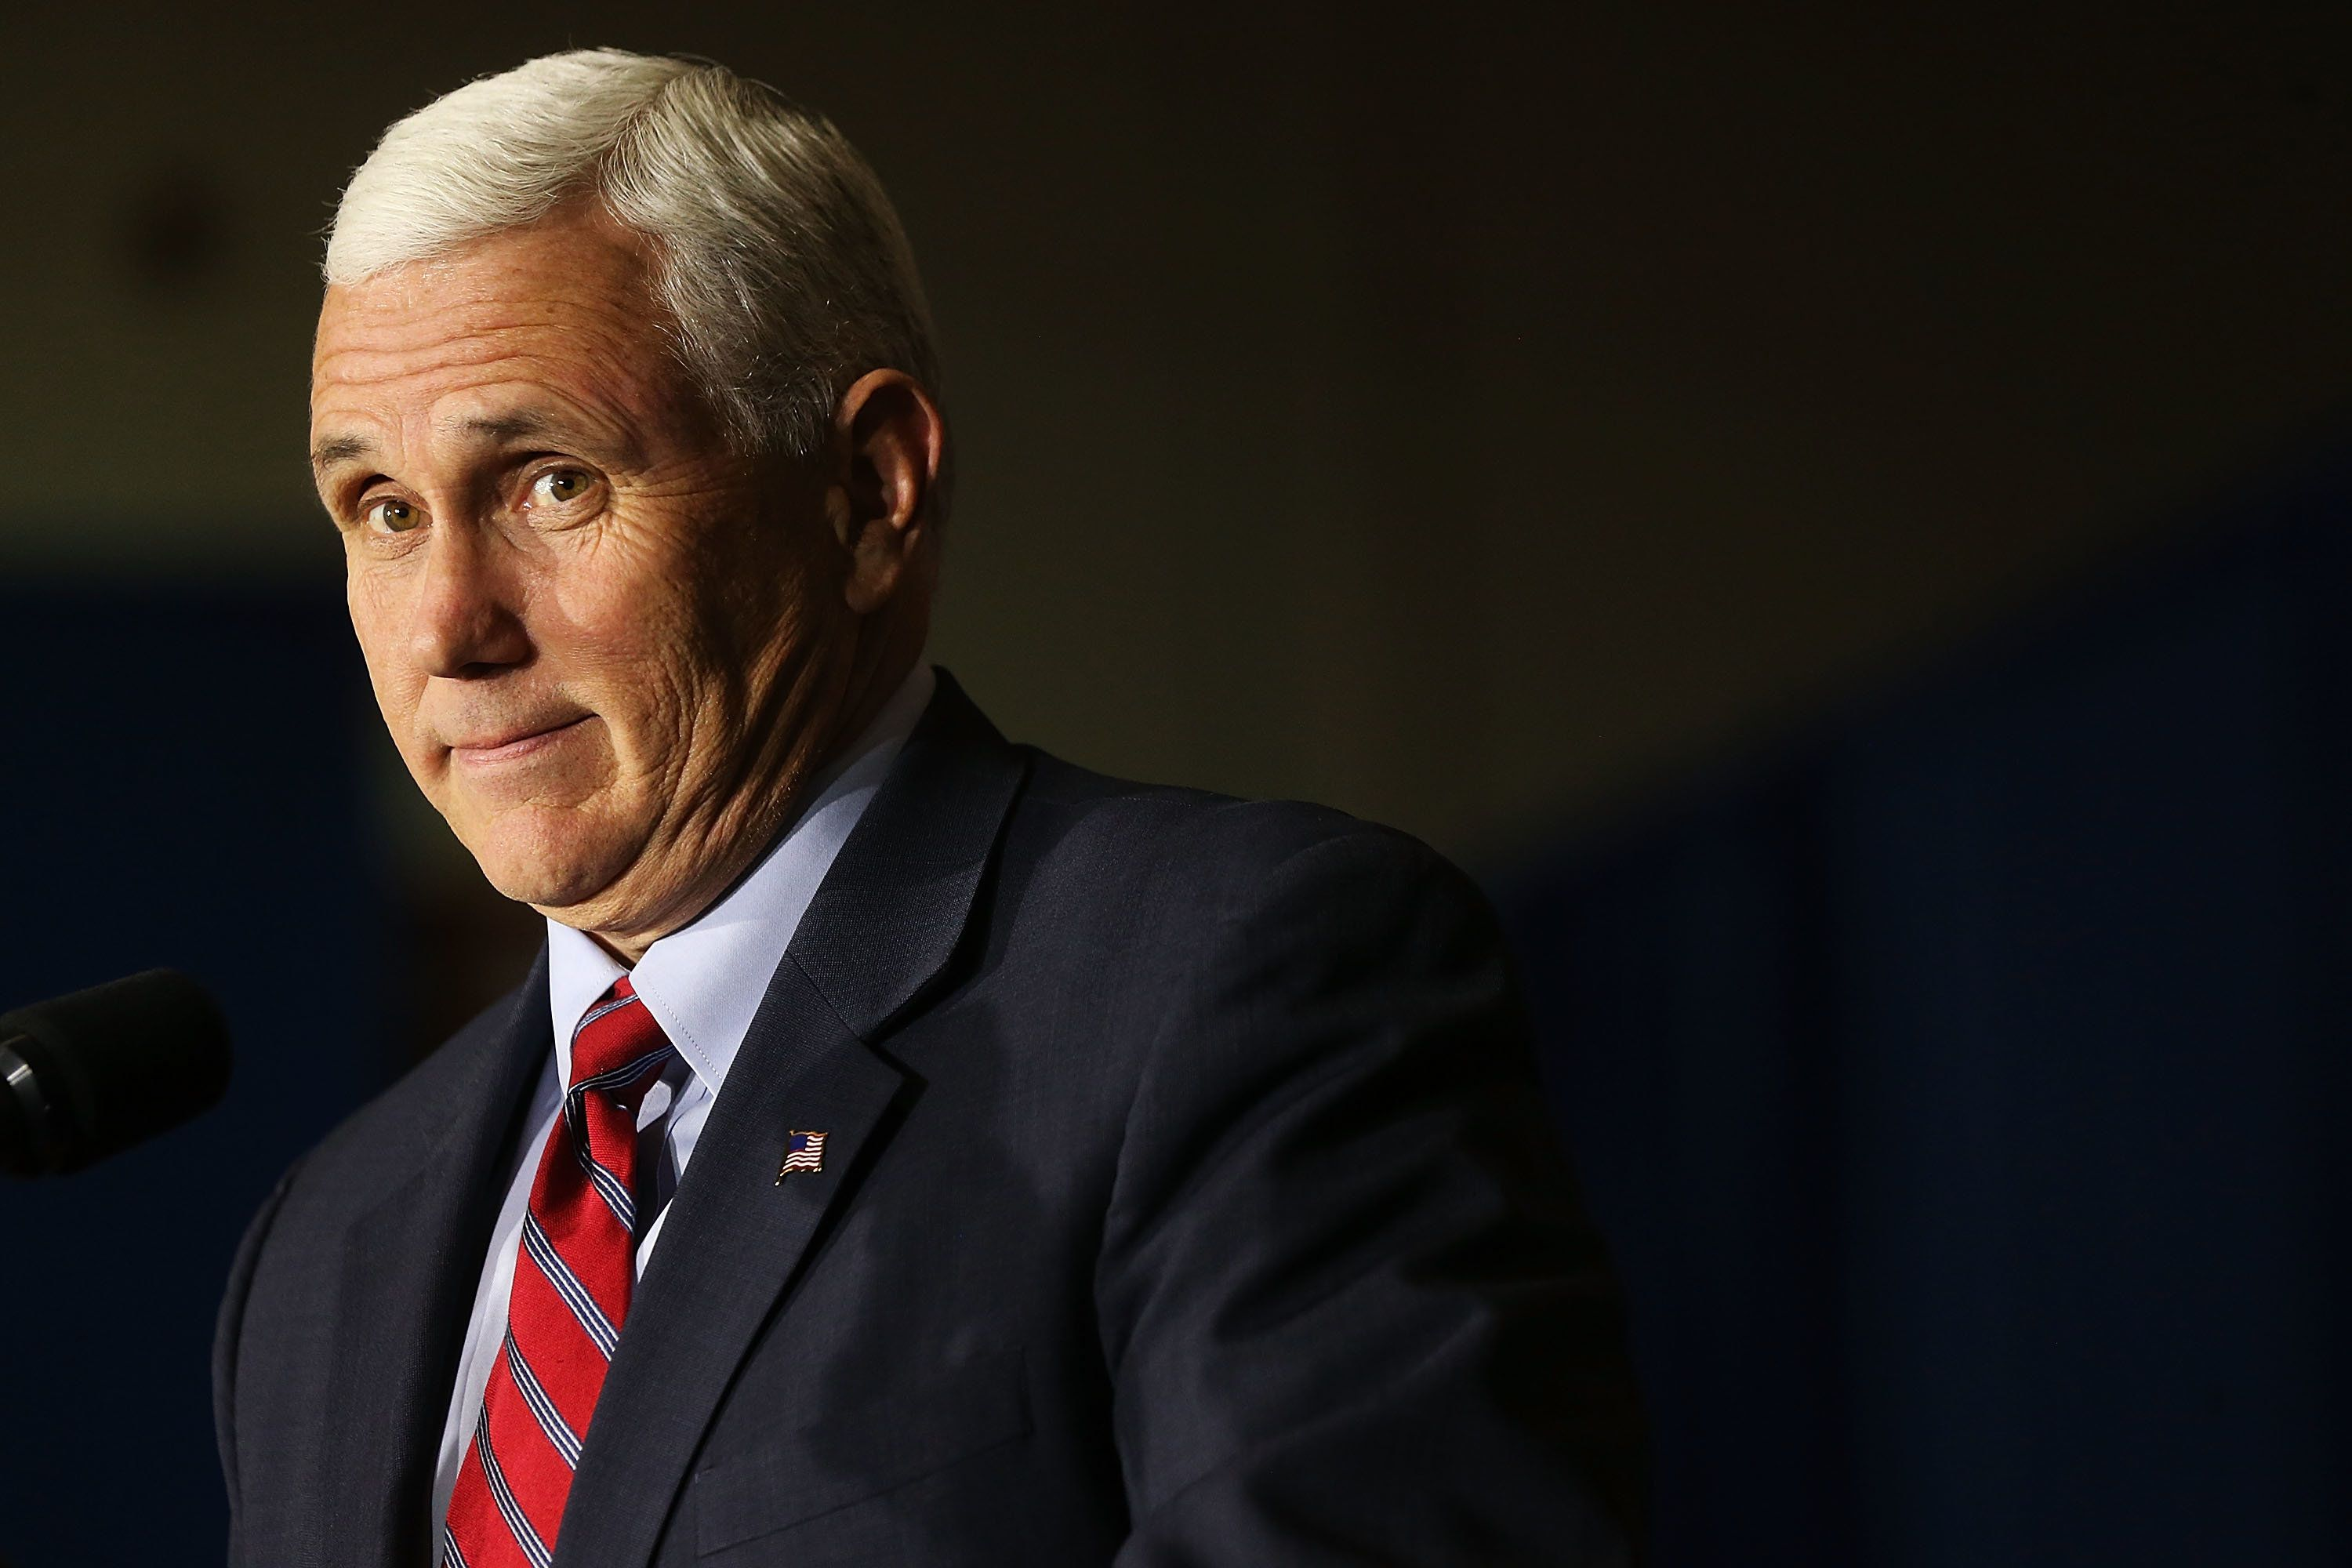 Mike Pence's public health record in Indiana includes fighting cigarettes taxes, loosening laws for cigar shops and voting against theFamily Smoking Prevention and Tobacco Control Act.